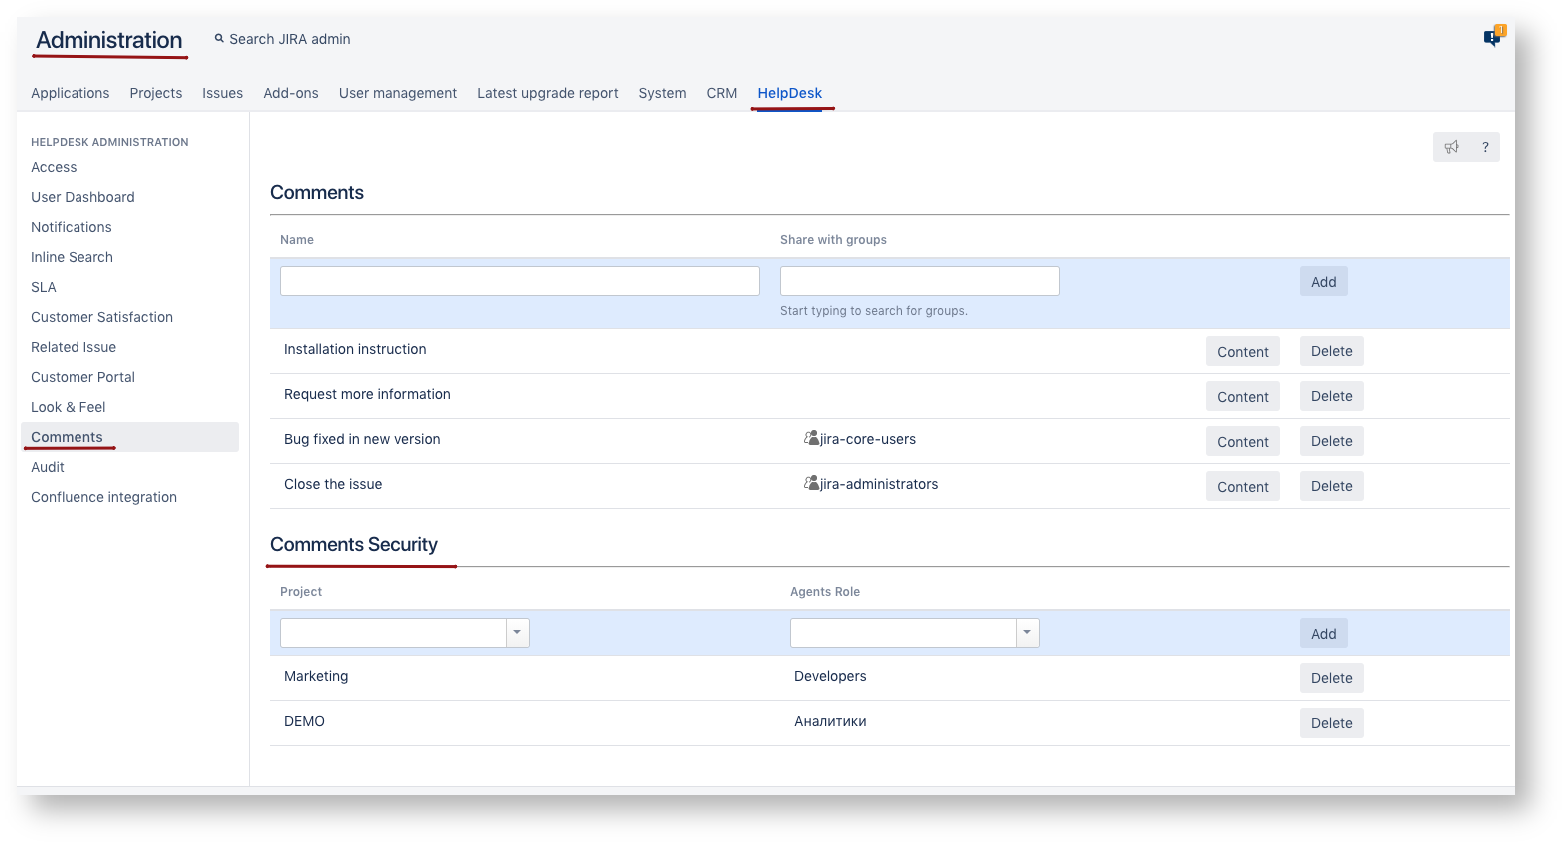 Comments Security - Help Desk for Jira 1 9 9 - Teamlead Wiki